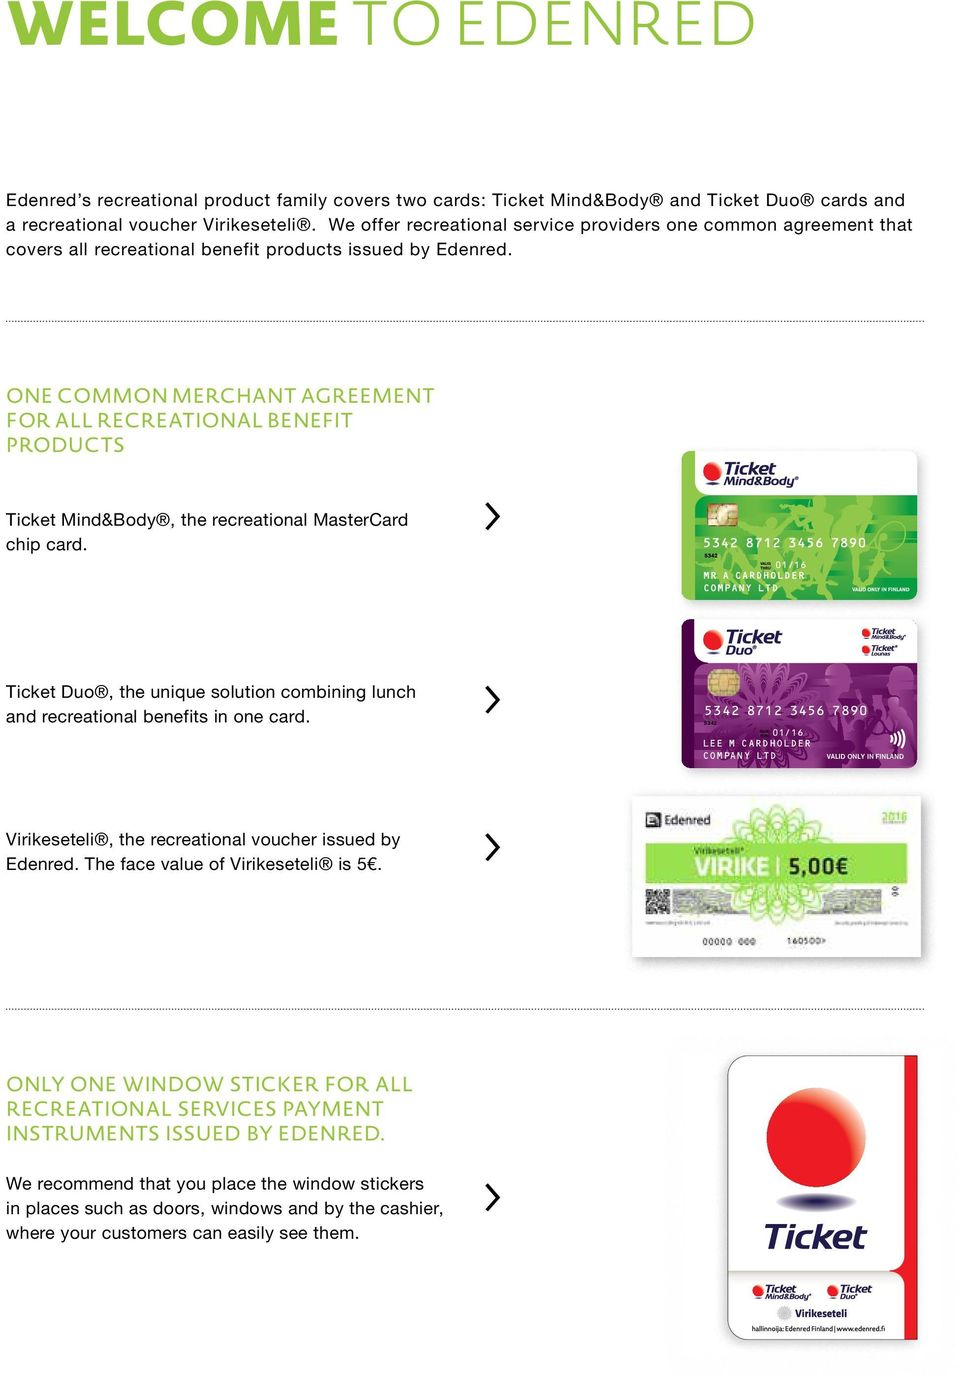 ONE COMMON MERCHANT AGREEMENT FOR ALL RECREATIONAL BENEFIT PRODUCTS Ticket Mind&Body, the recreational MasterCard chip card.